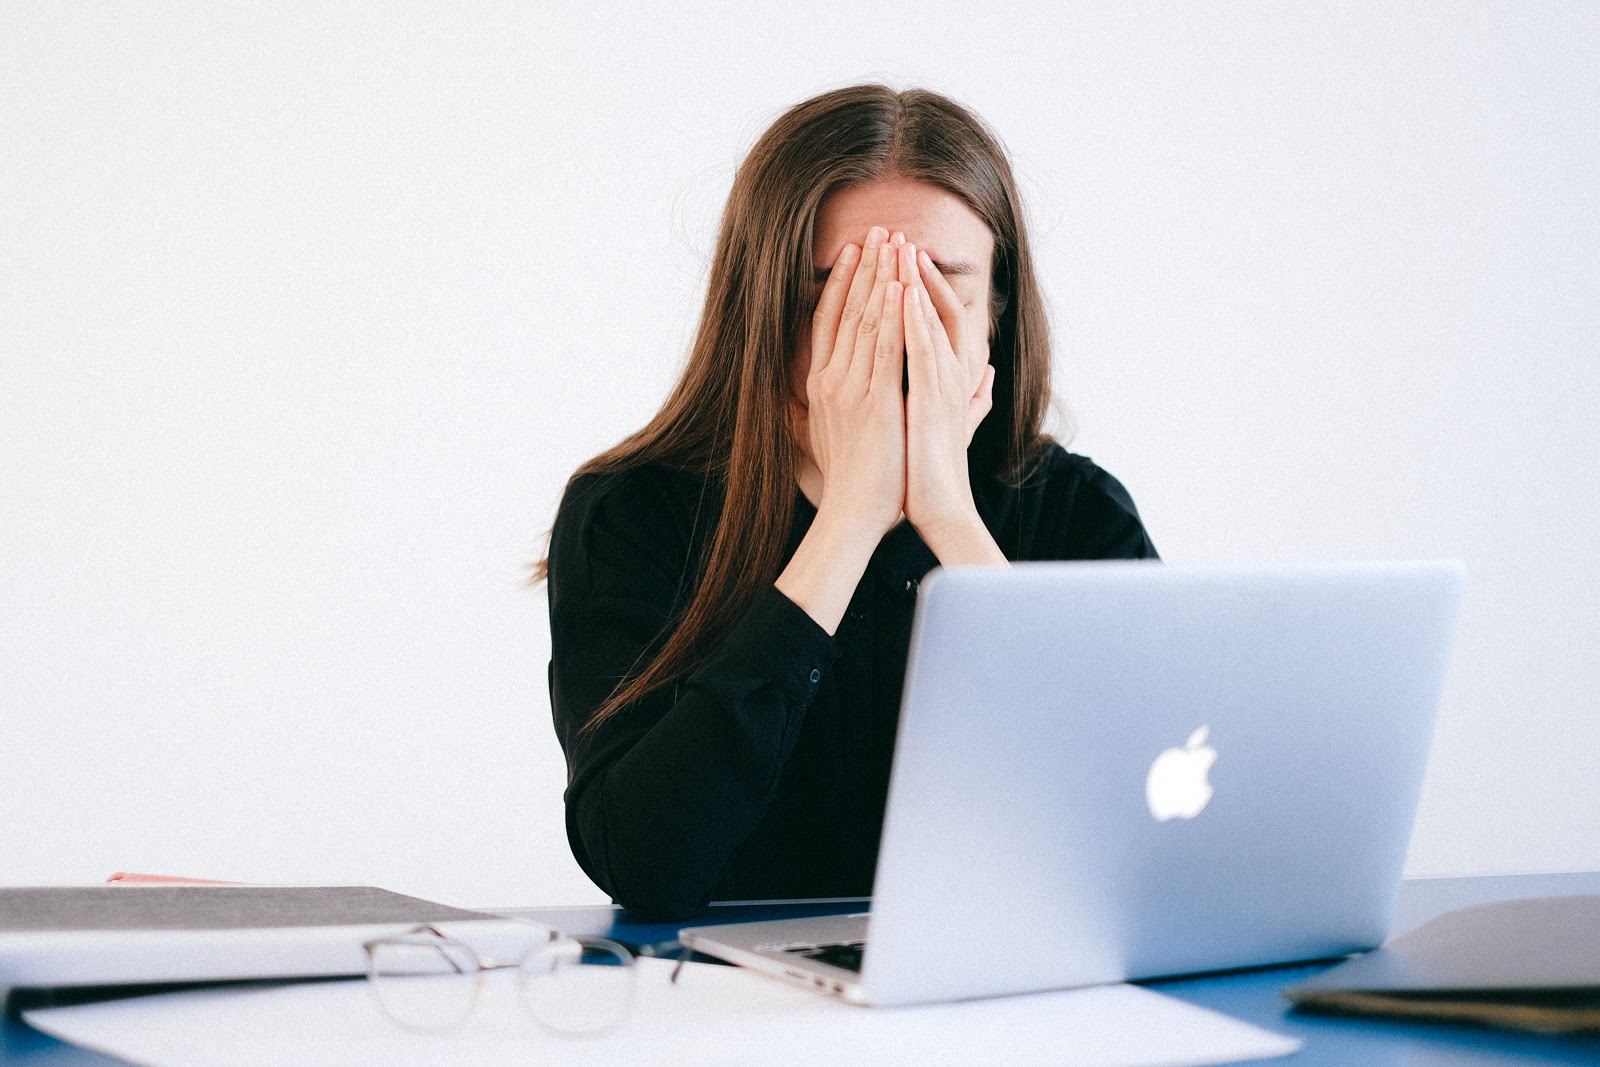 A woman sits with her laptop looking extremely upset and stressed, possibly from an event such as job loss.